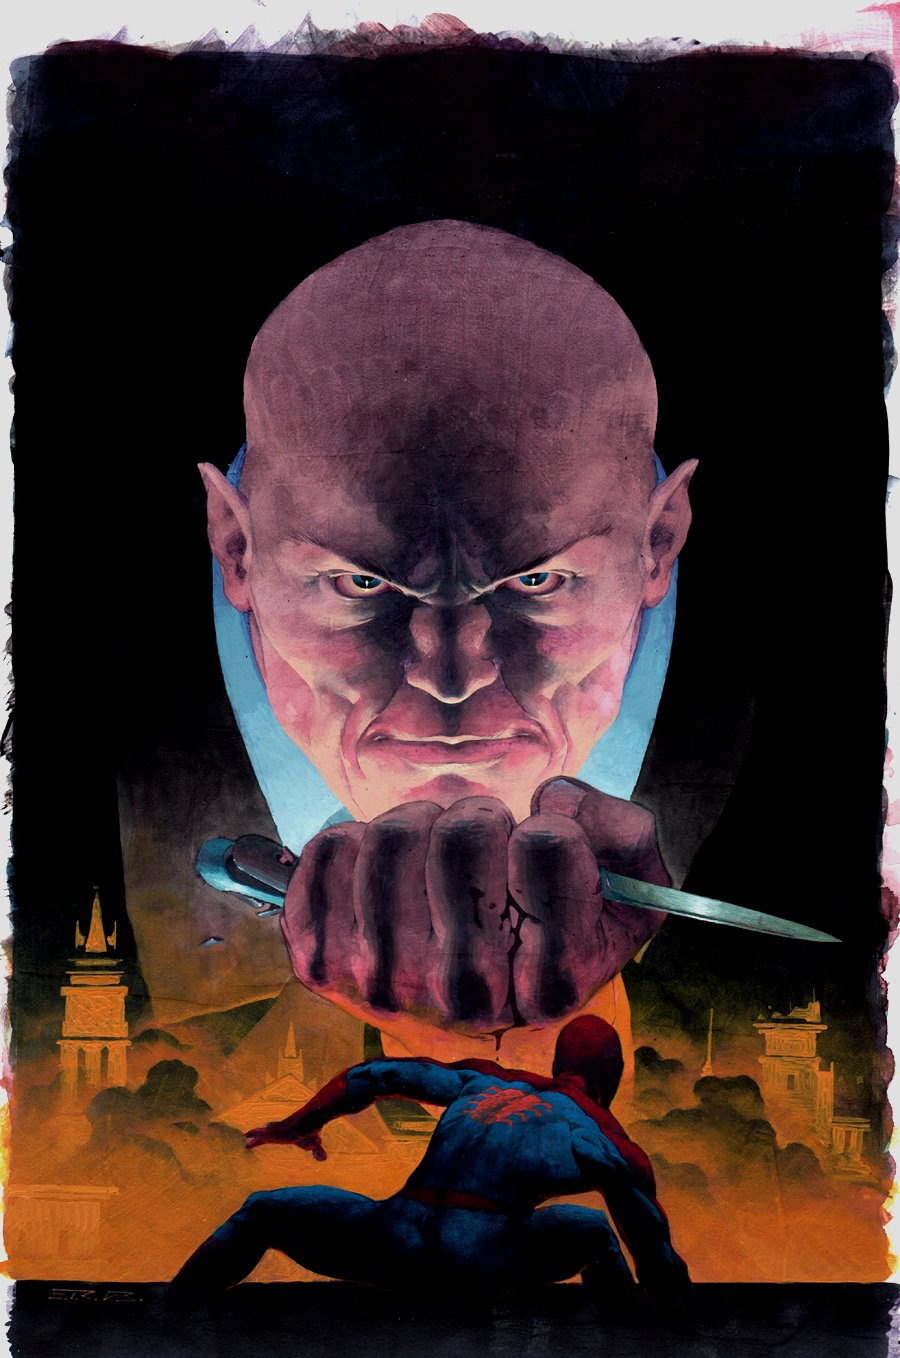 Kingpin #2 Cover Painting (2003)